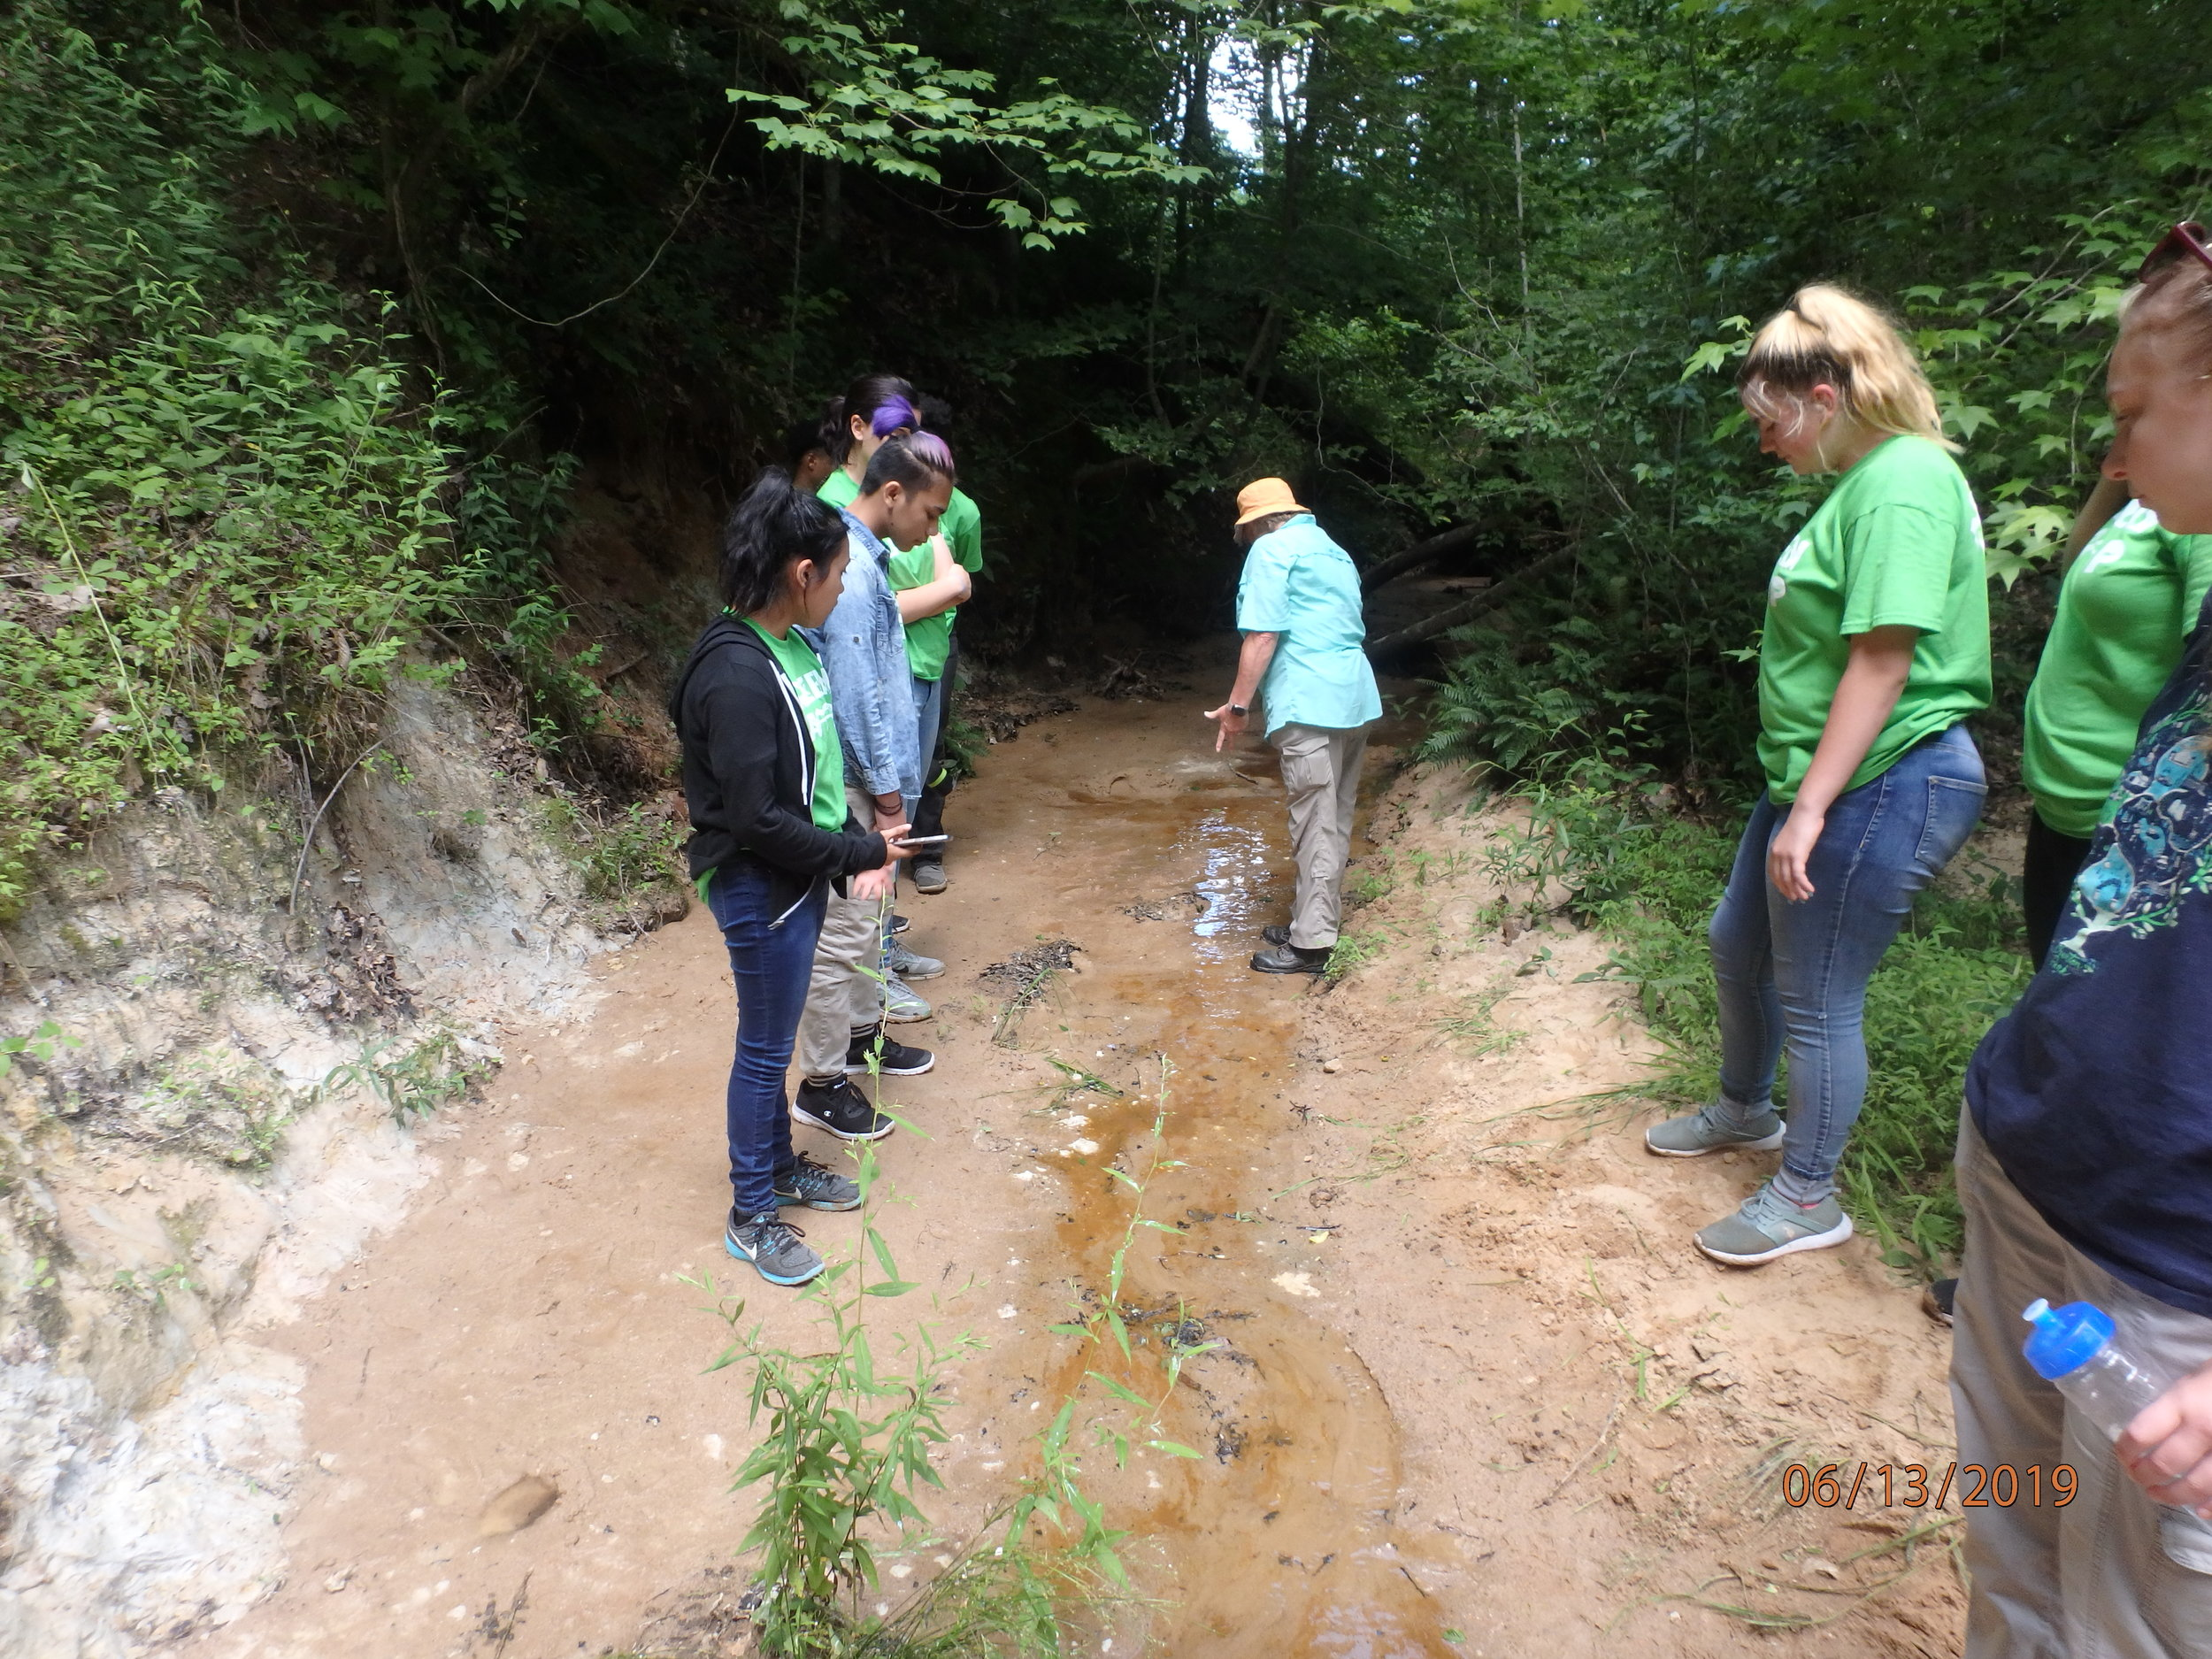 Day 4: Pinecrest Camp, Layers of the Aquifer